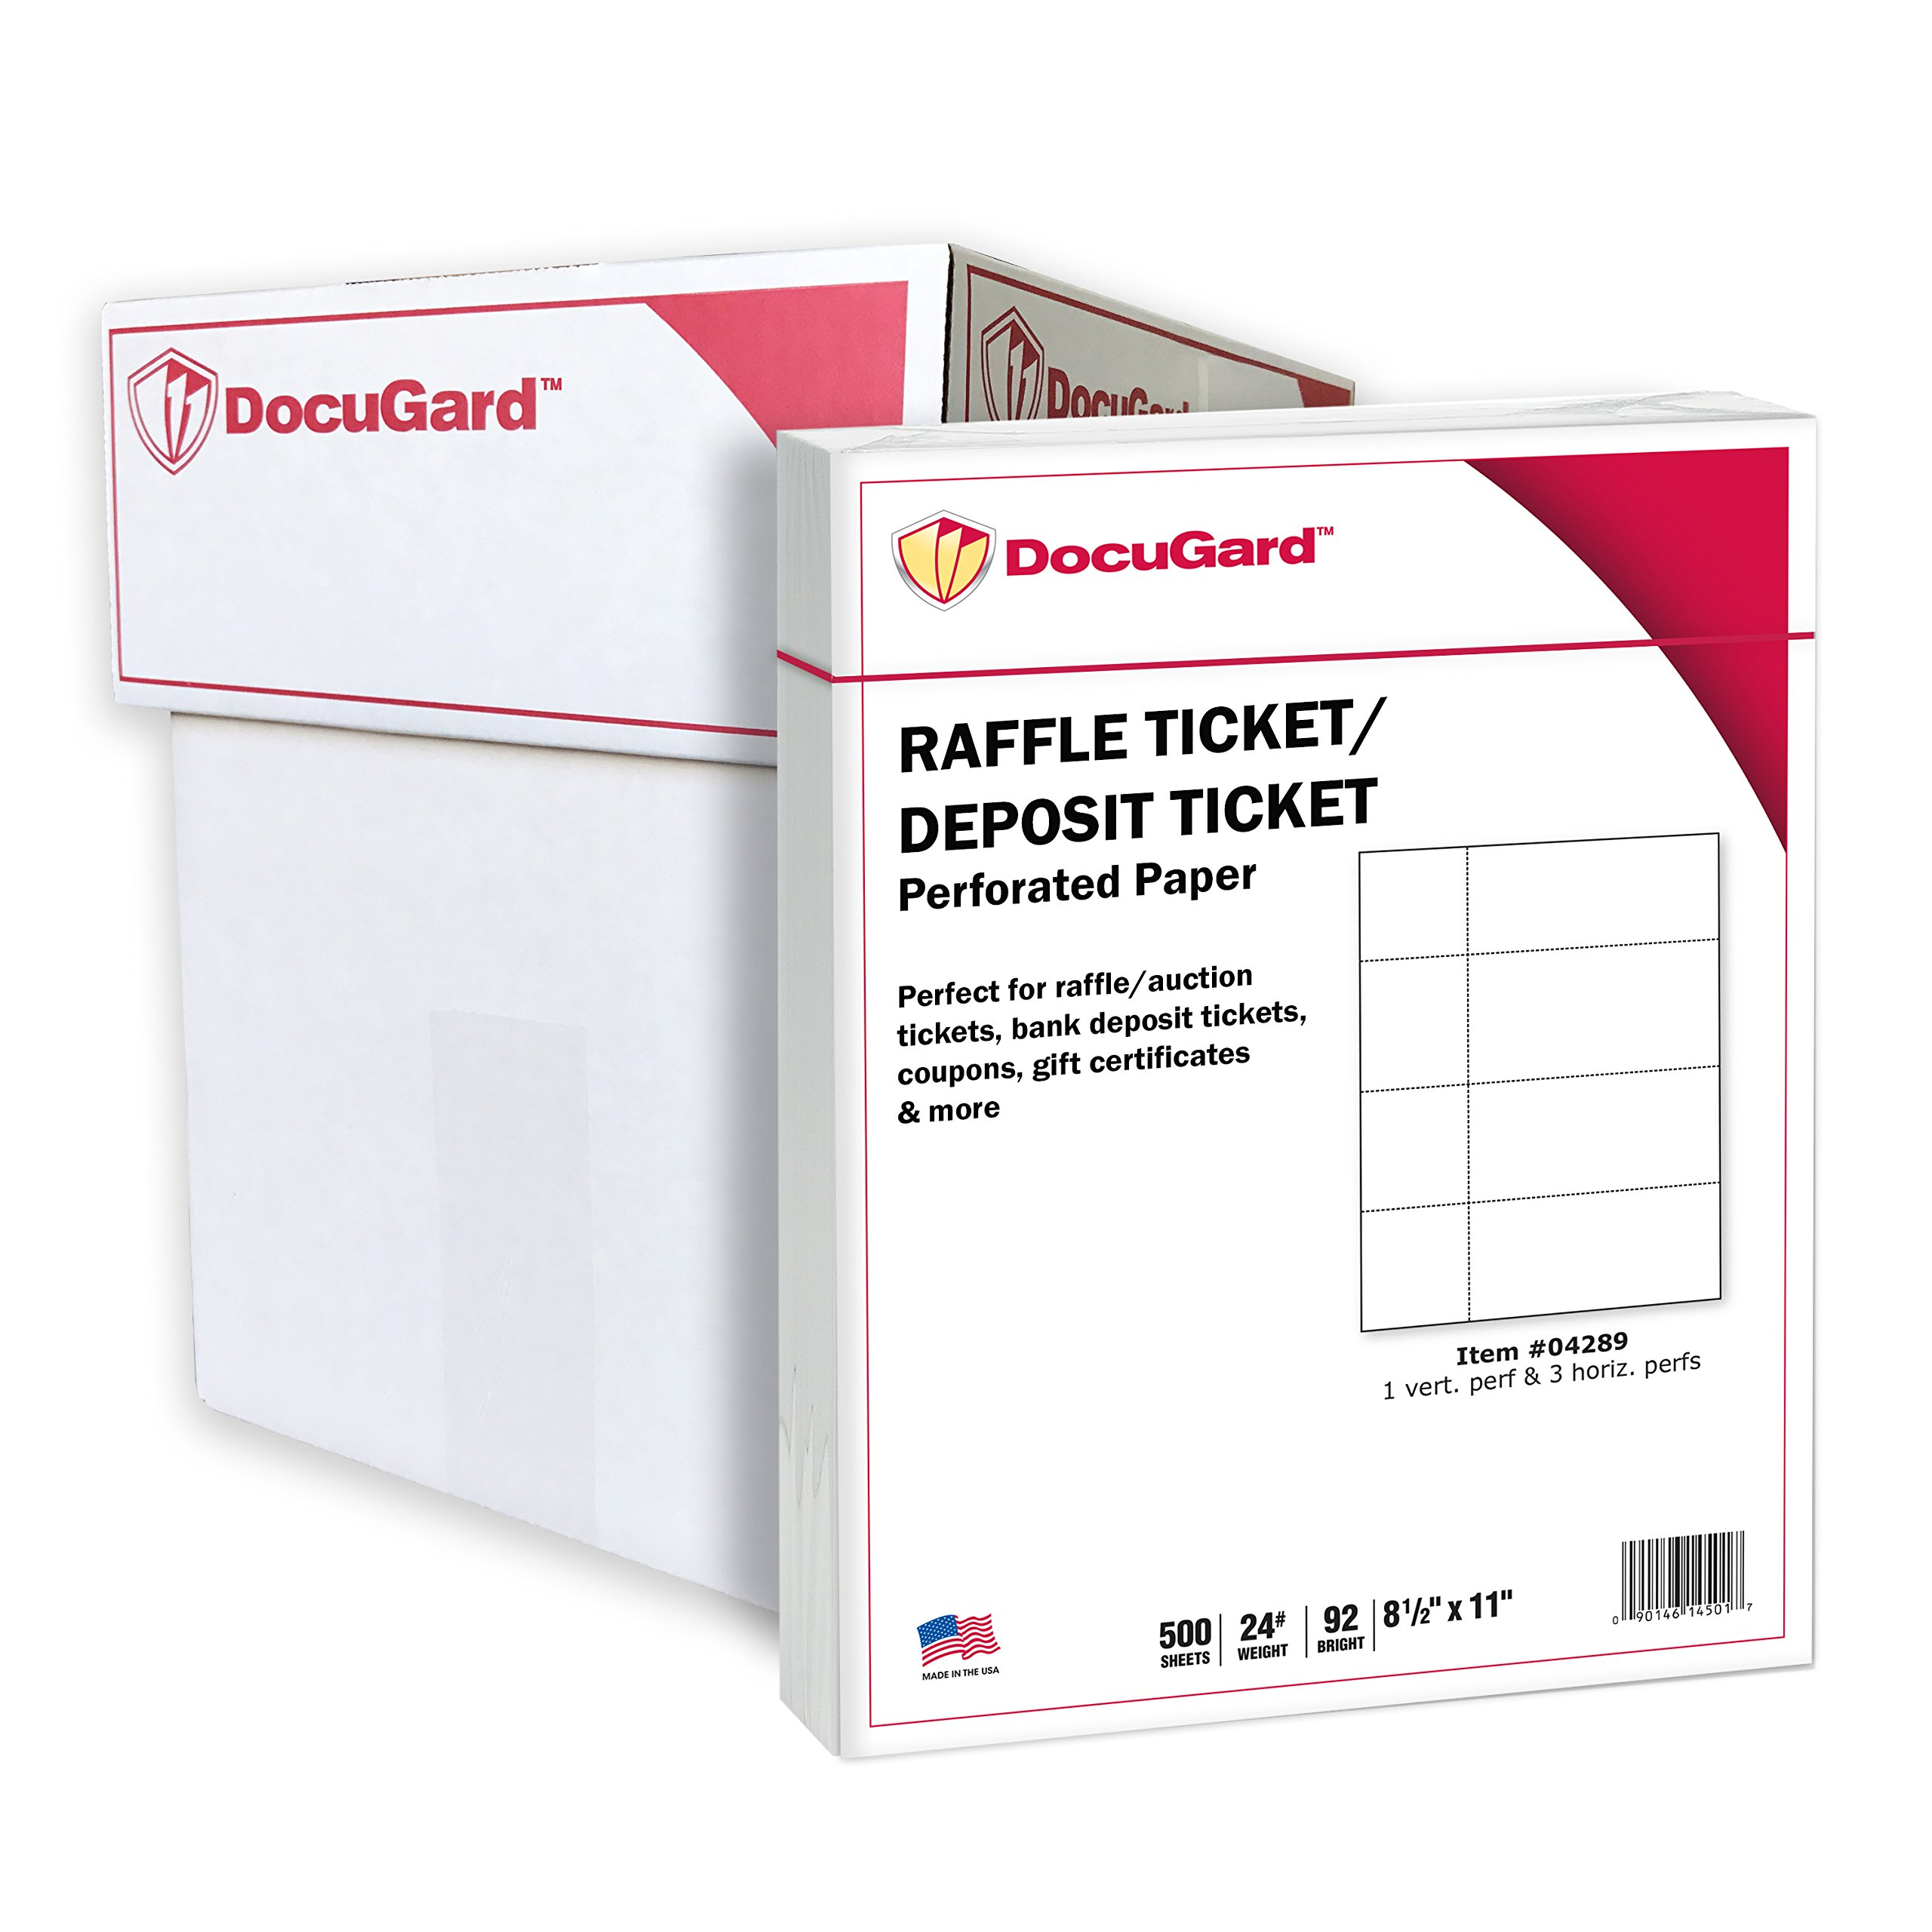 DocuGard Perforated Paper for Deposit Tickets, Raffle Tickets, and More, Tear-Away Stubs, 8.5 x 11, 24 lb, 4 Perfs, 500 Sheets, White (04289) (Pack of 5) by DocuGard